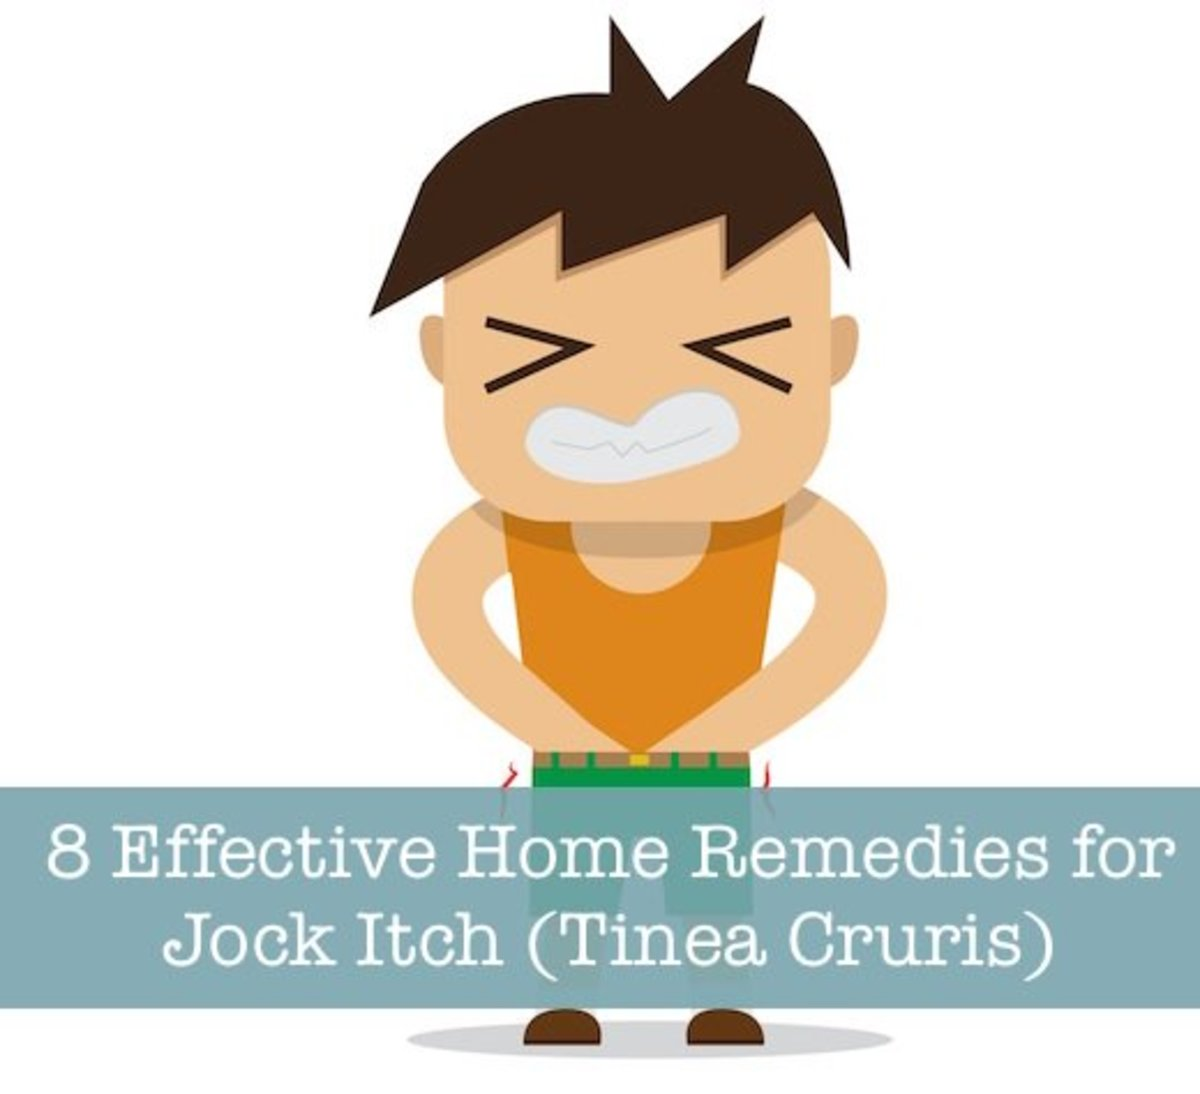 8 Effective Home Remedies for Jock Itch (Tinea Cruris